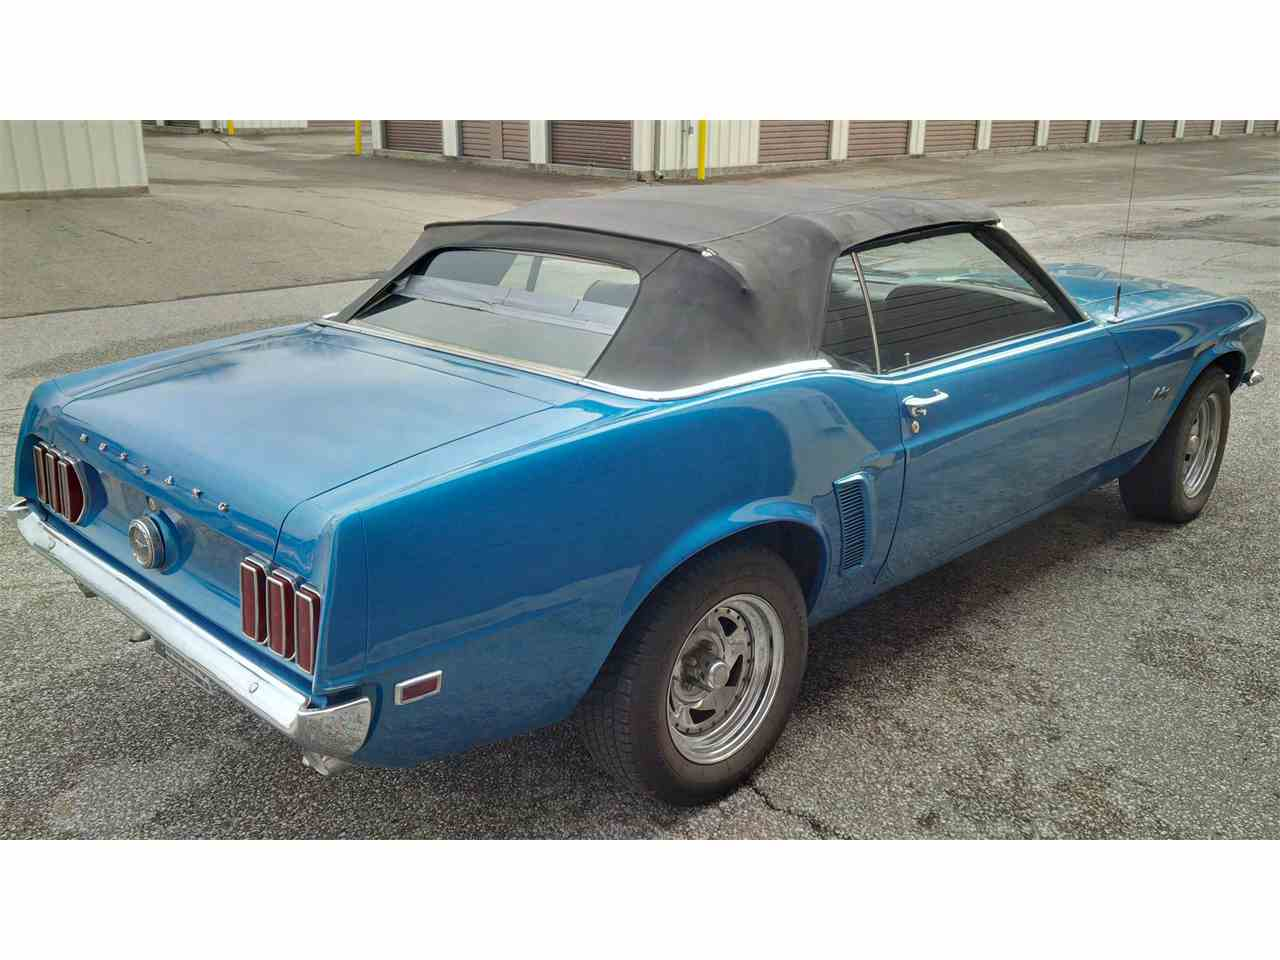 Large Picture of 1969 Ford Mustang - $24,900.00 Offered by Benza Motors - L1HU